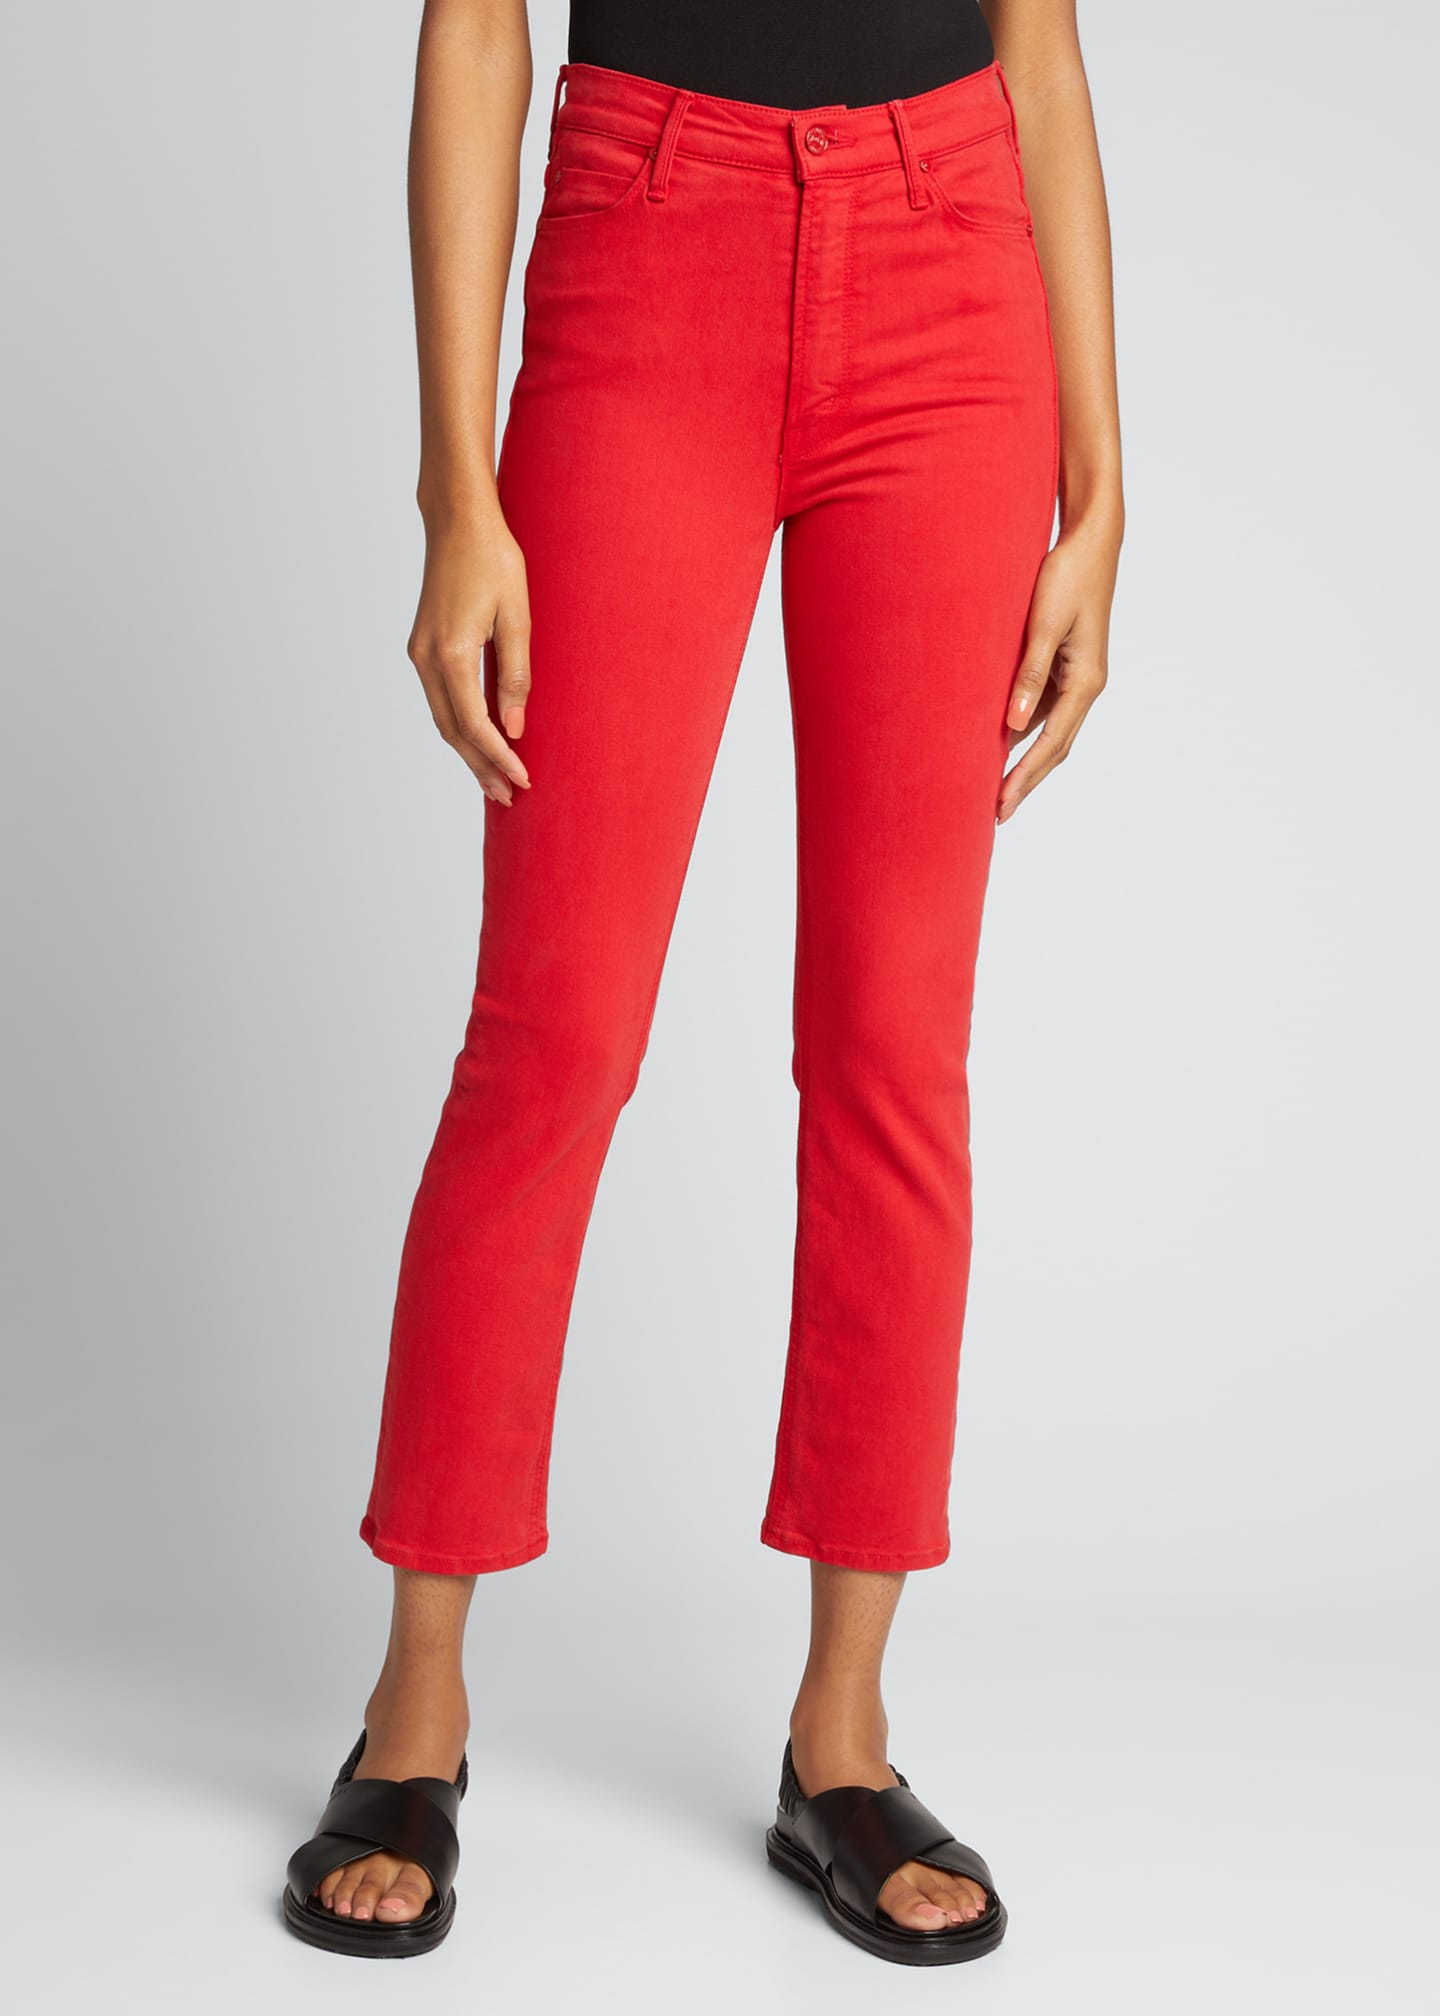 Image 3 of 5: The Dazzler Ankle Skinny Jeans